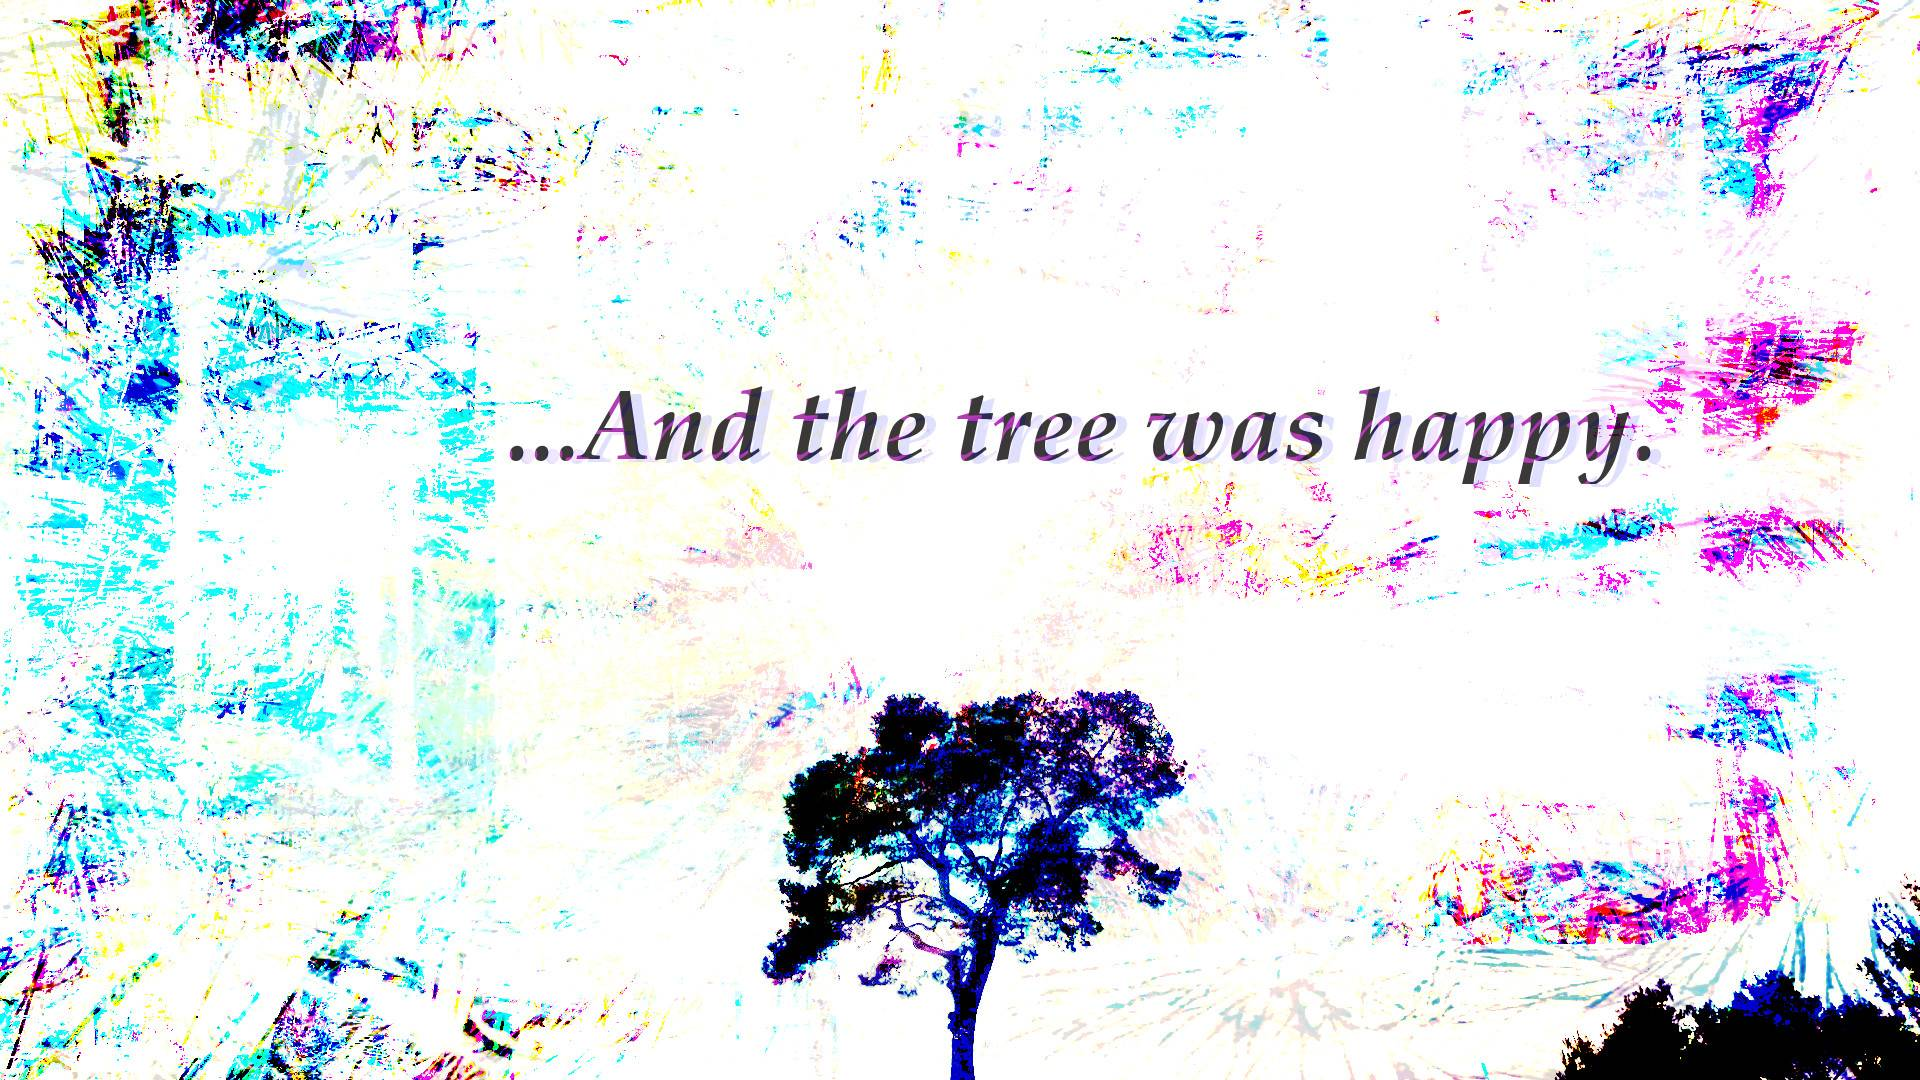 Tree Shel Silverstein Quote: The Giving Tree Quotes. QuotesGram